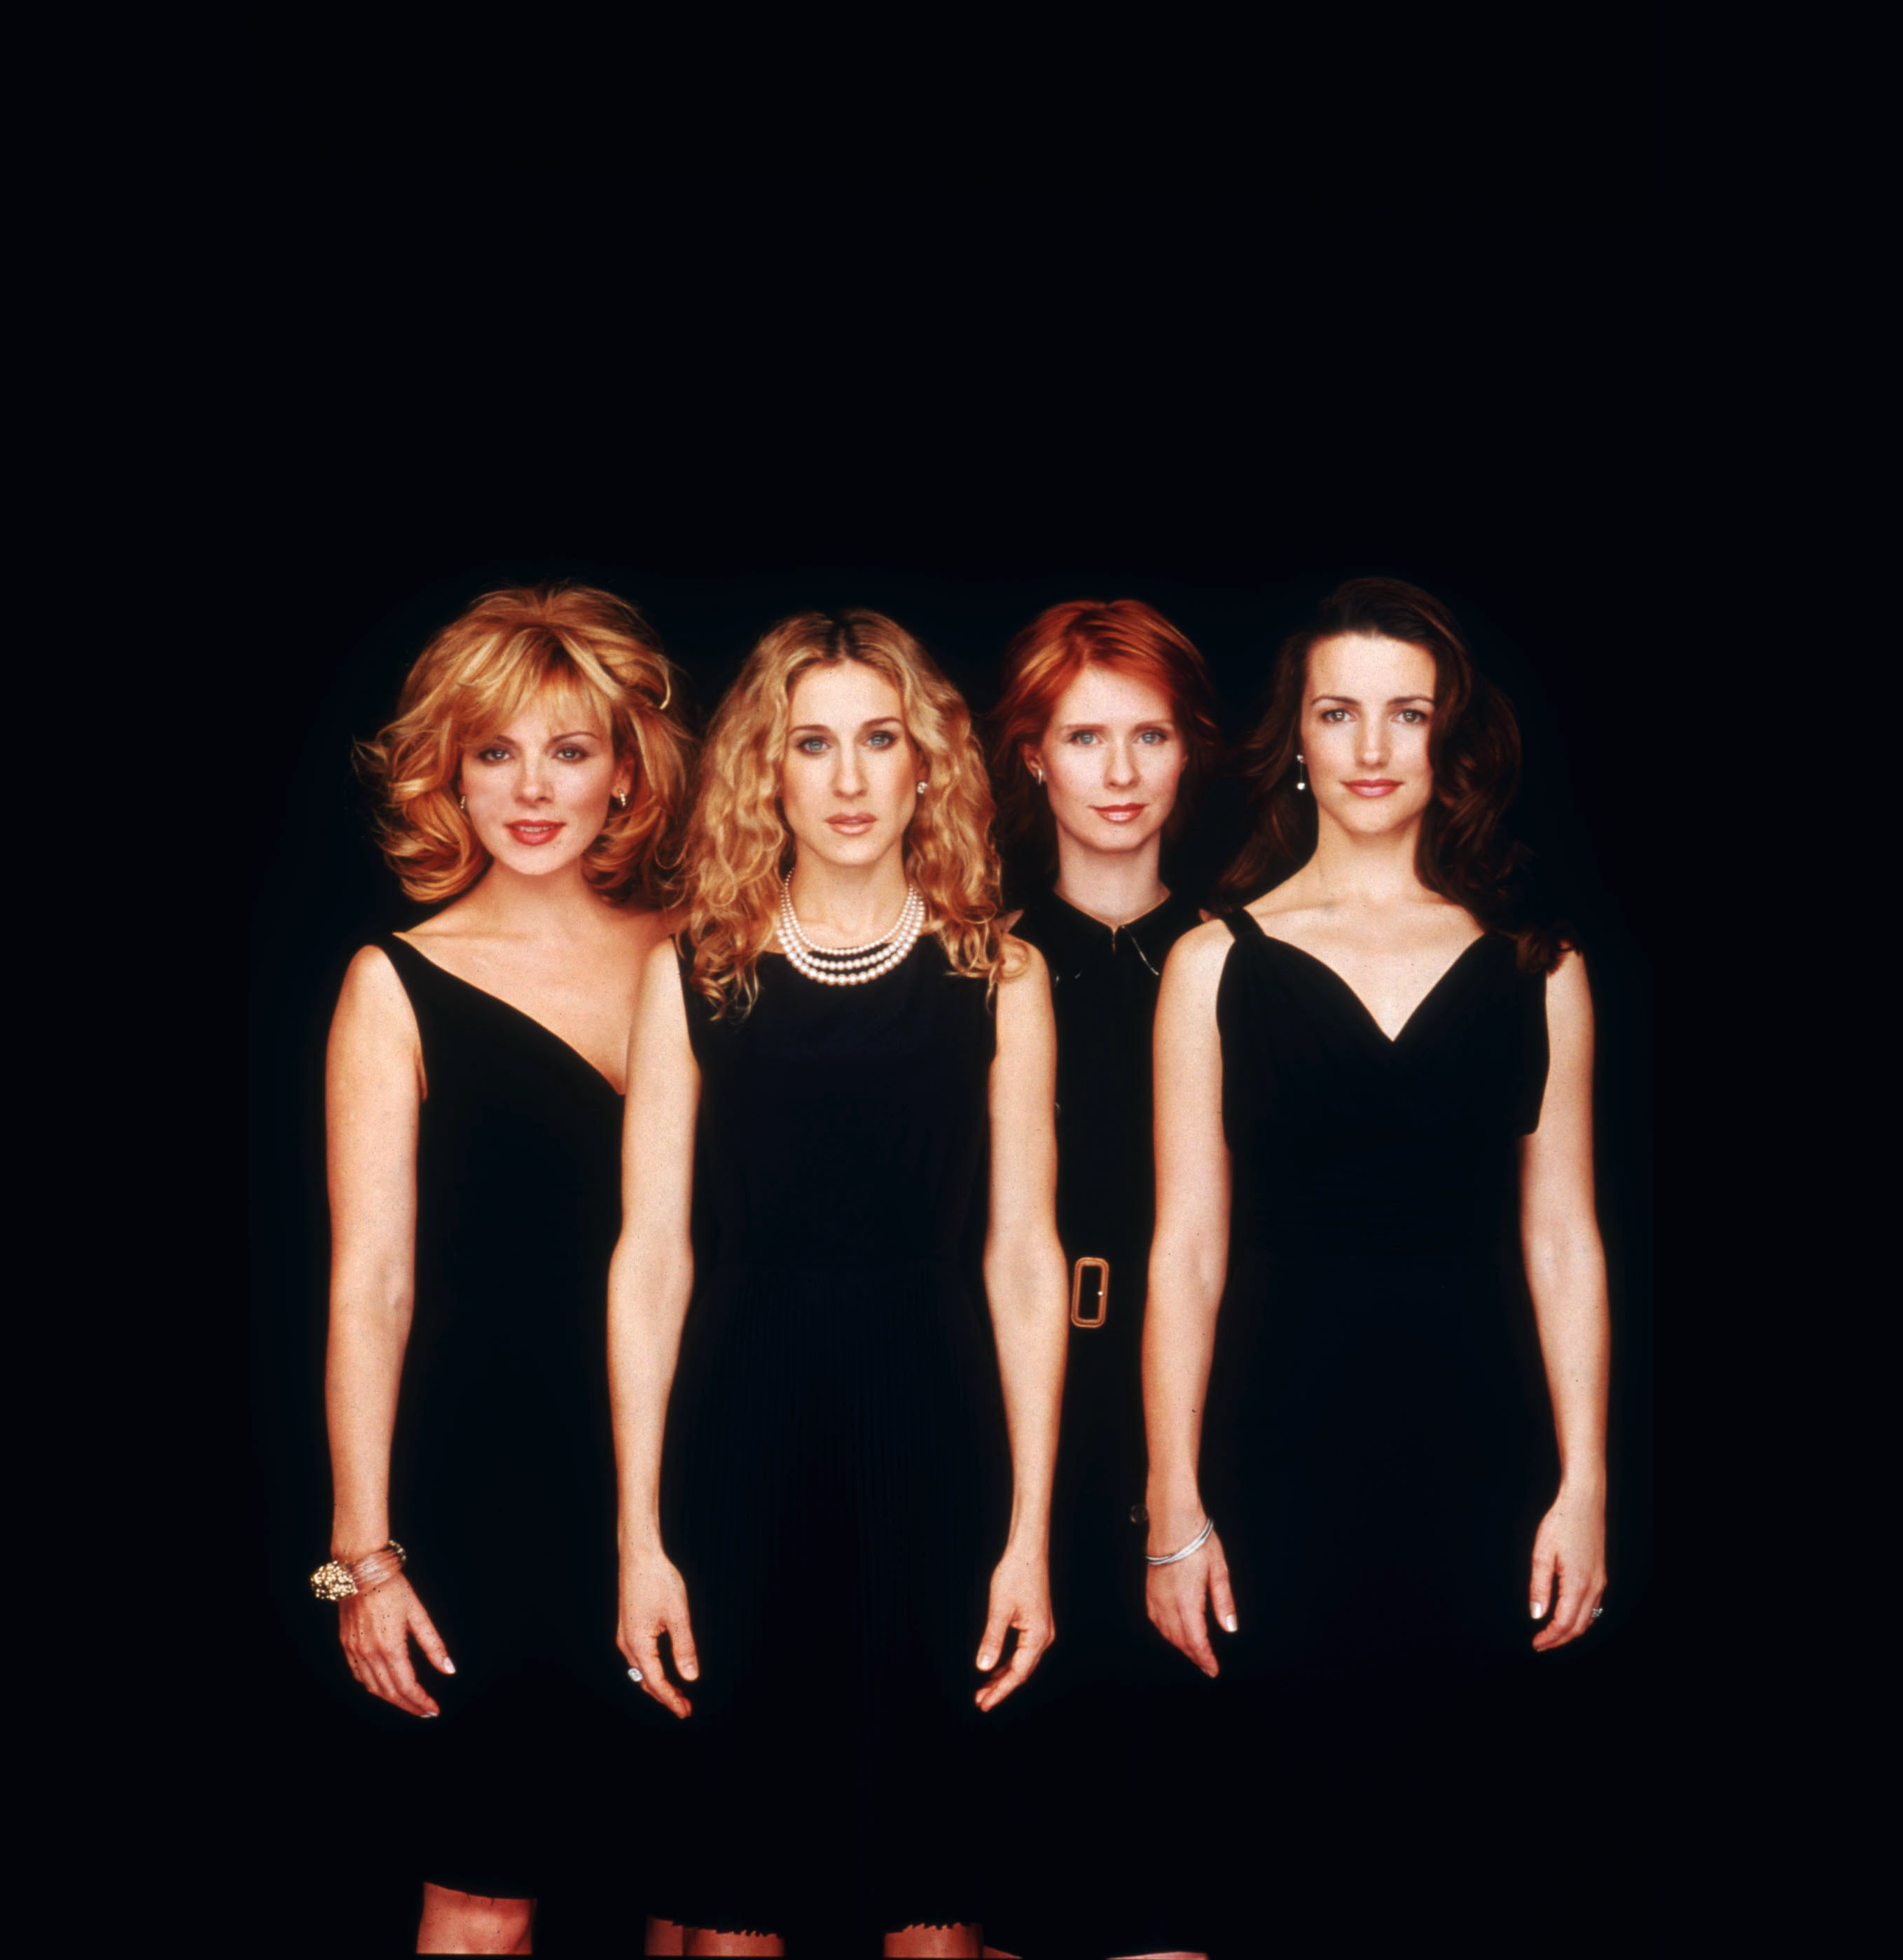 From left to right: Kim Cattrall as Samantha; Sarah Jessica Parker as Carrie; Cynthia Nixon as Miranda; Kristin Davis as Charlotte (photo: Getty Images)